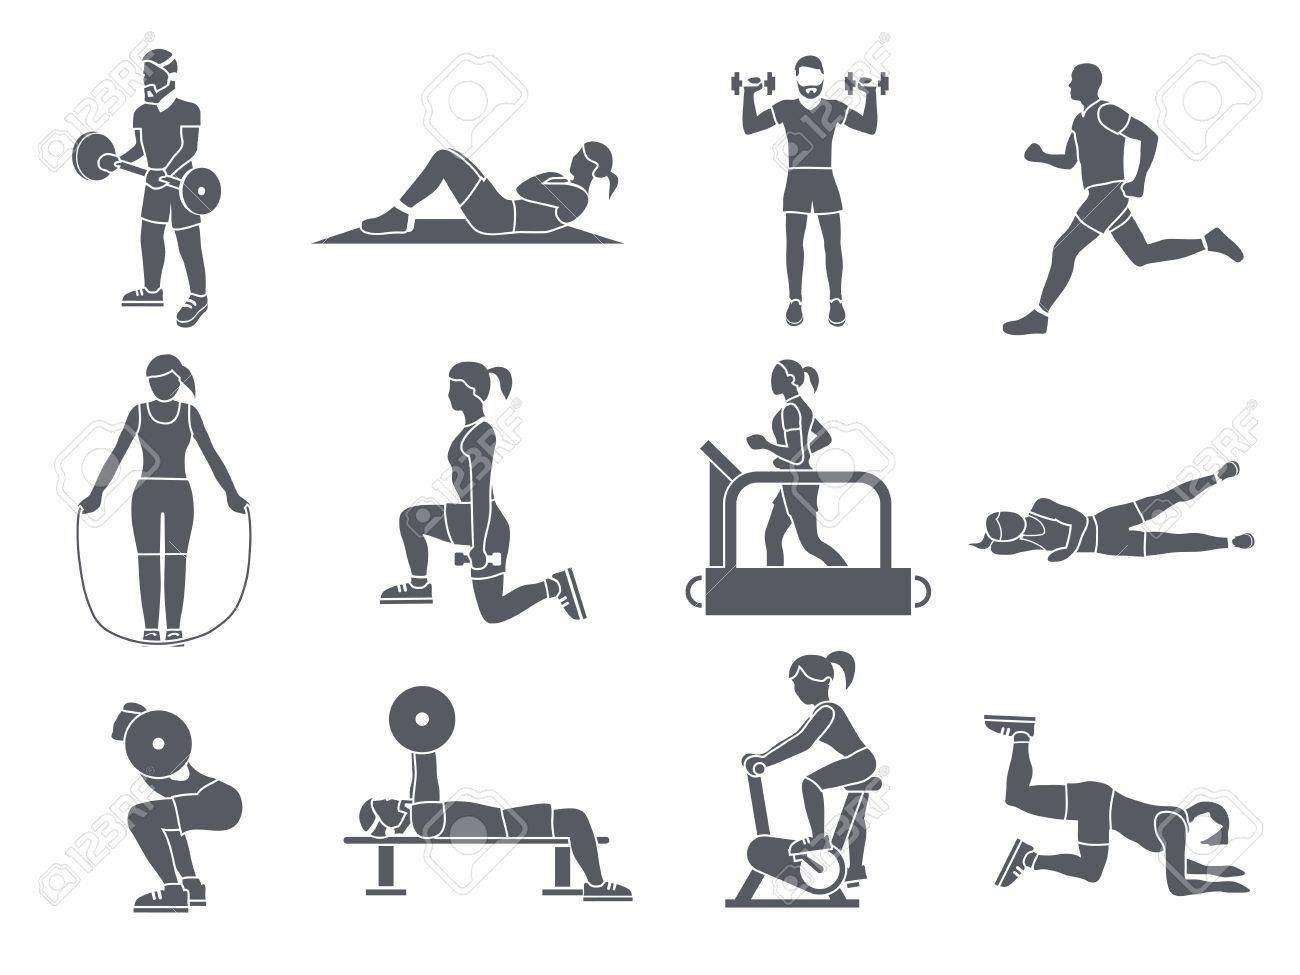 http://previews.123rf.com/images/macrovector/macrovector1410/macrovector141000106/32133156-Gym-sport-exercises-fitness-weight-loss-and-healthy-lifestyle-icons-set-vector-illustration-Stock-Vector.jpg